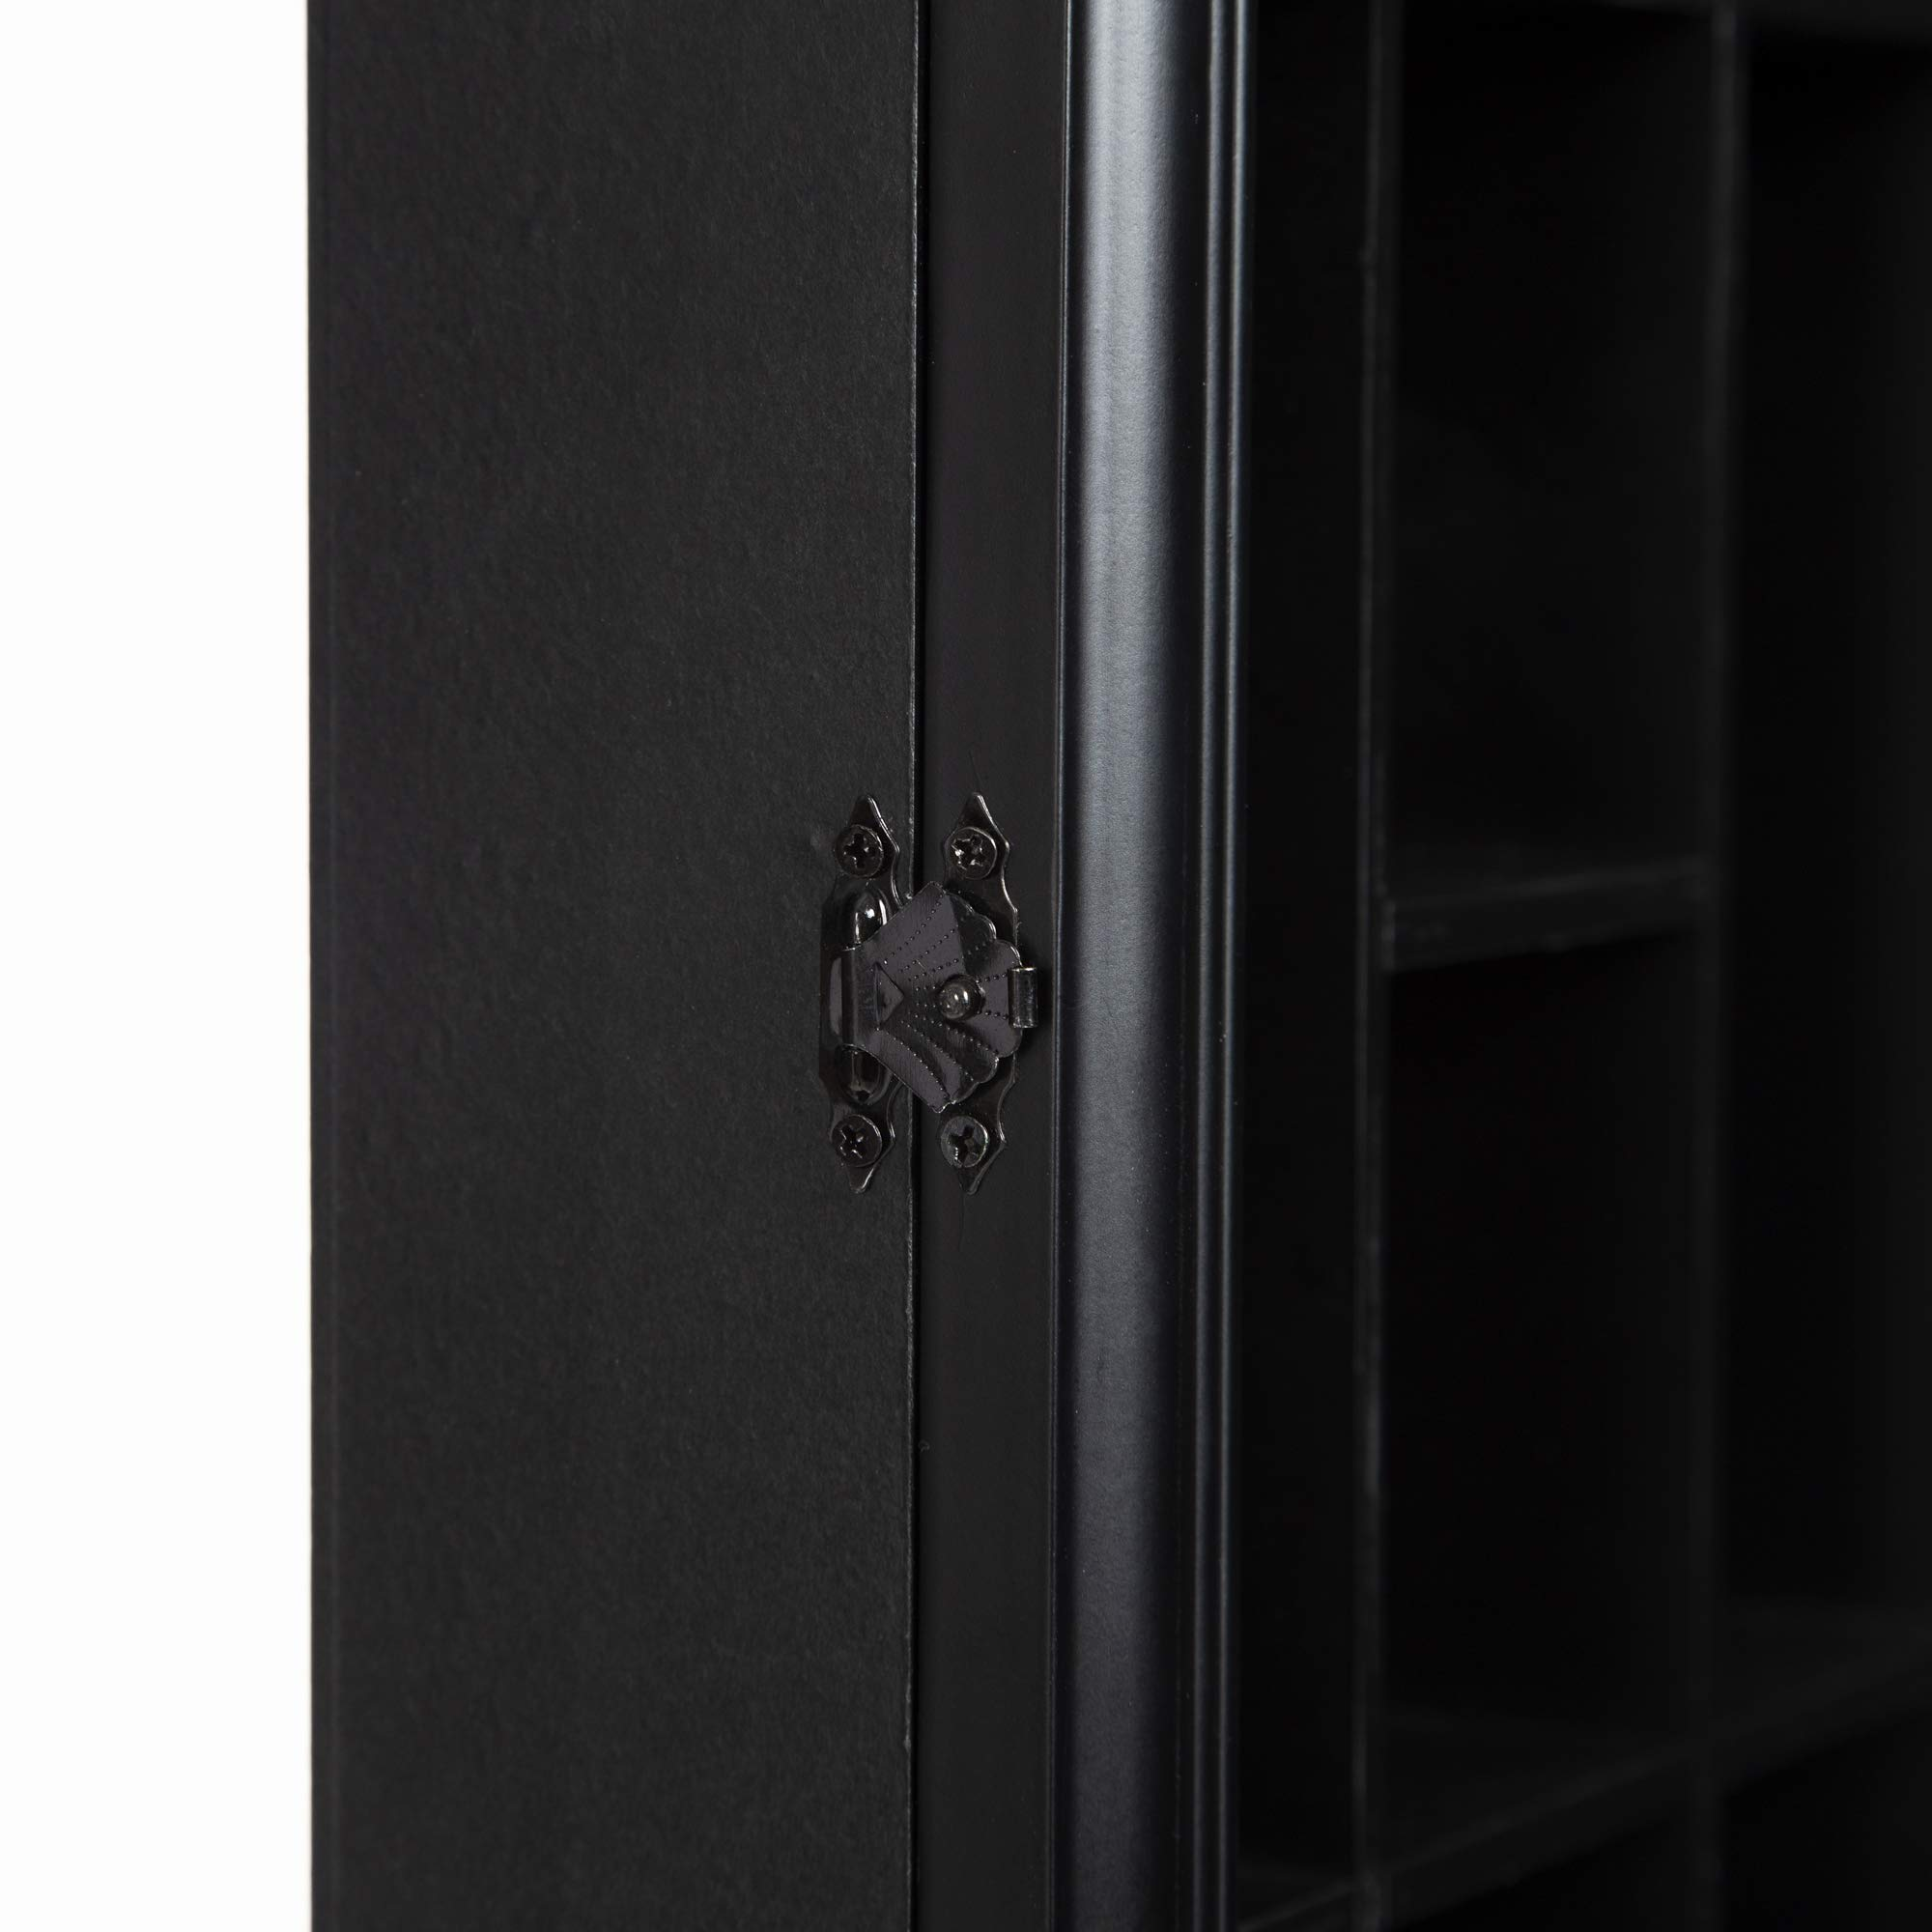 Gallery Solutions 18x16 Shot Glass Display Case with Hinged Front in Black by Gallery Solutions (Image #5)